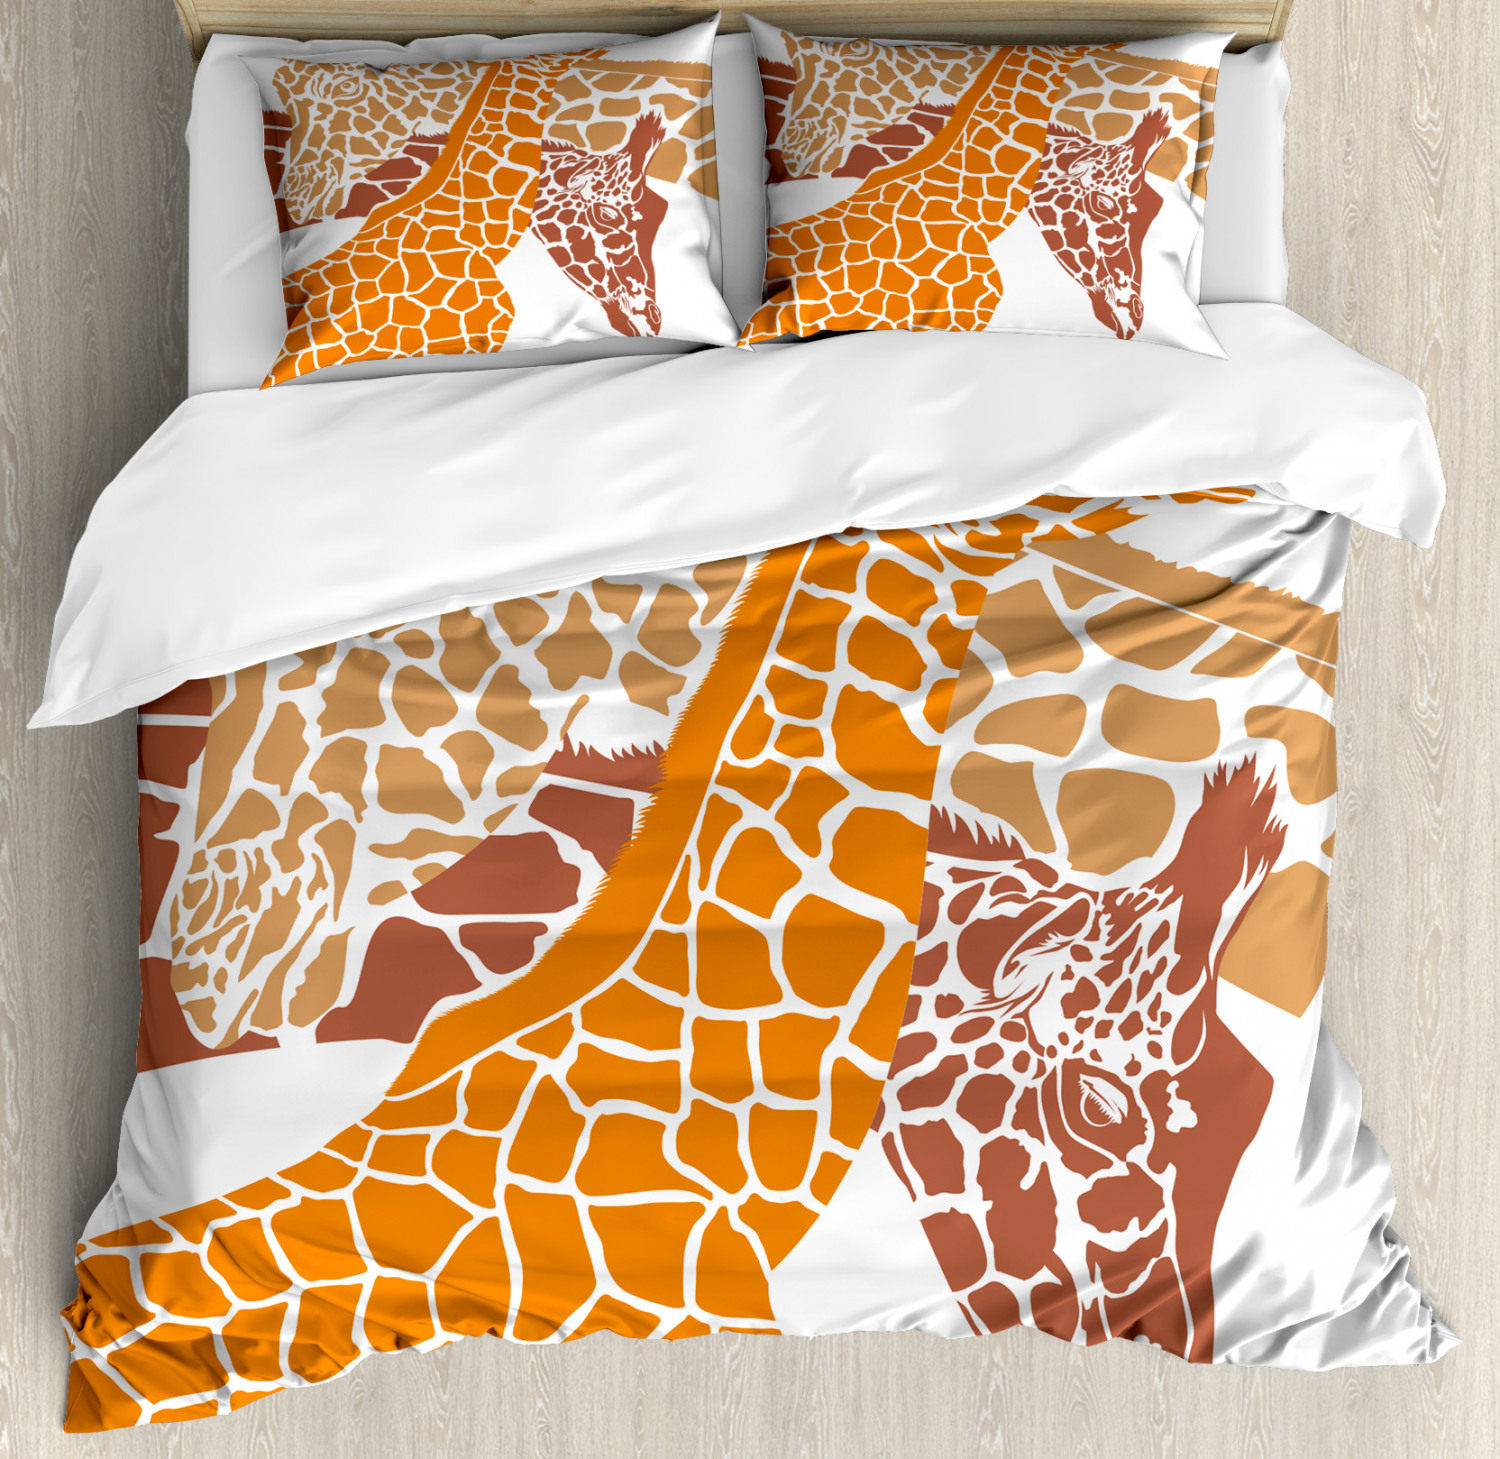 Giraffe Duvet Cover Set with Pillow Shams Wildlife in Africa Print